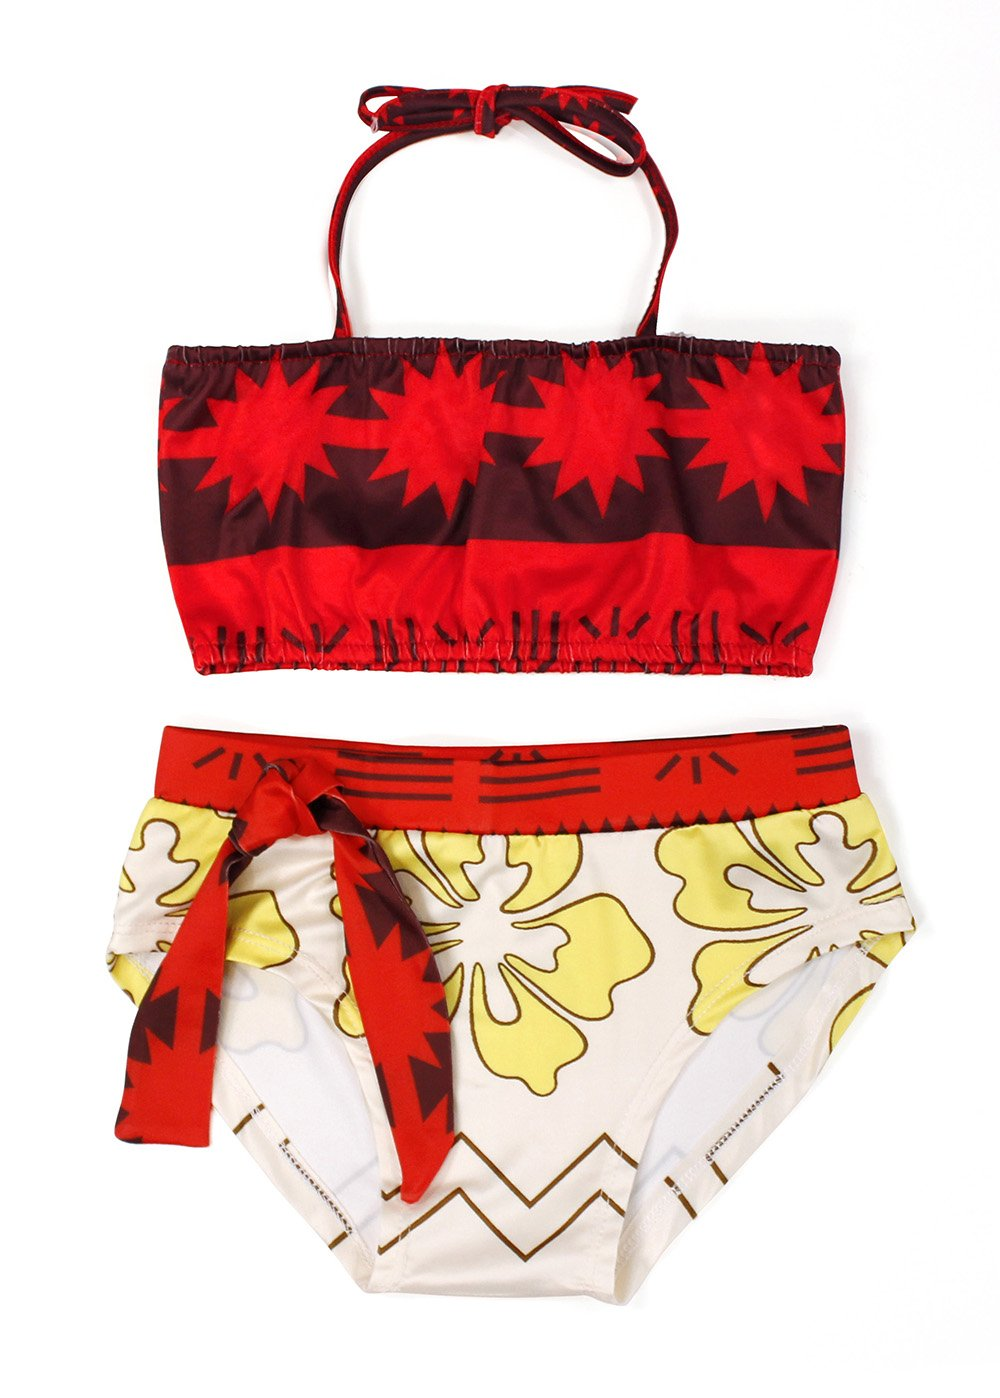 ee6da822a9821 AmzBarley Baby Moana Swimwear Bikini Sets Toddler 2 Pieces Swimsuit Beach  Pool Party Bathing Suit Holiday Water Sport Outfits Age 2-3 Years Size 3T  Red